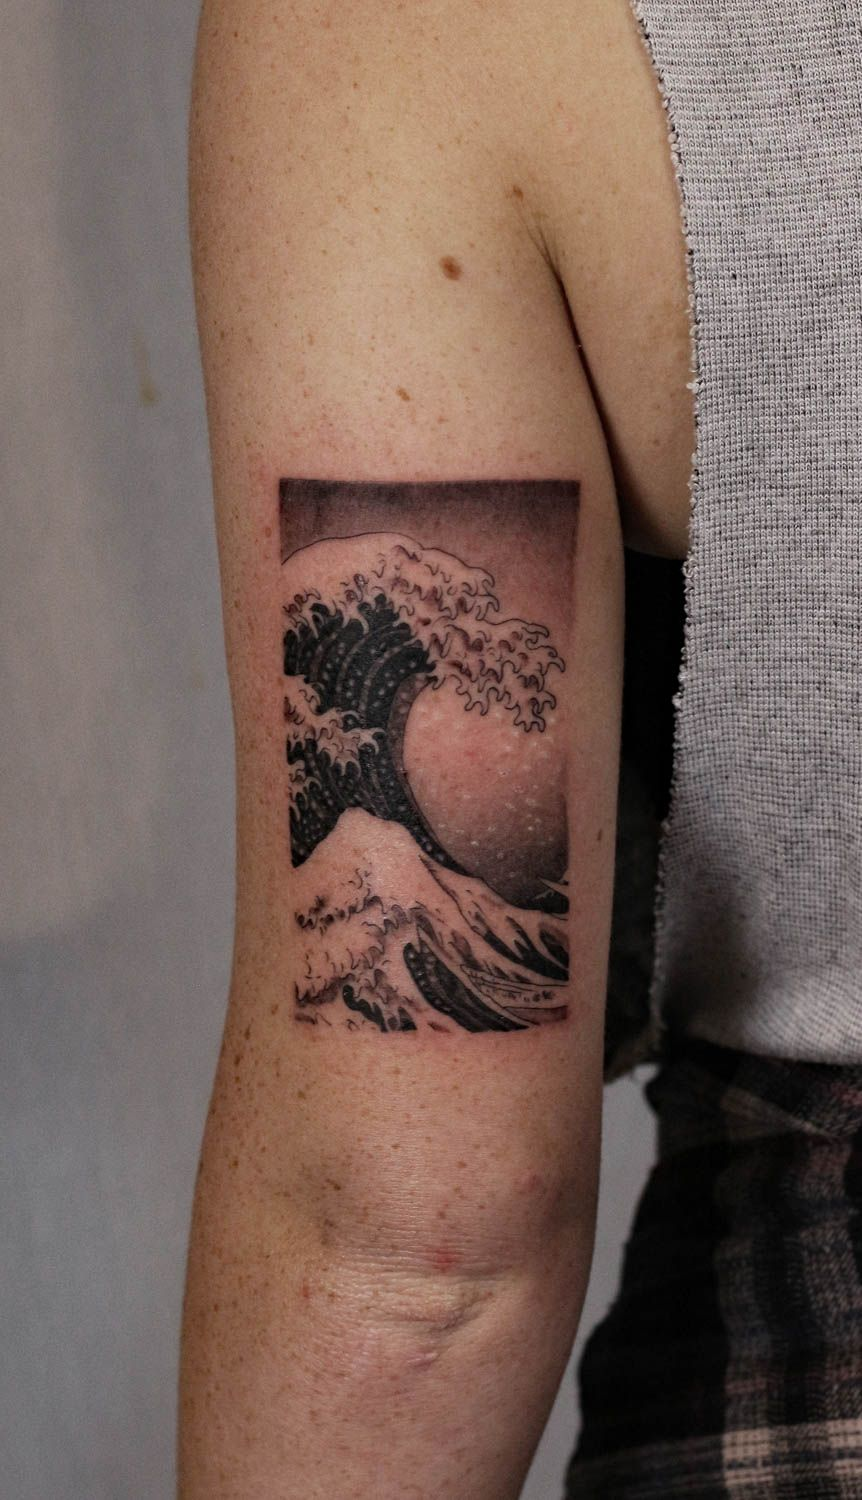 Colton james phillips chapter one tattoo san diego